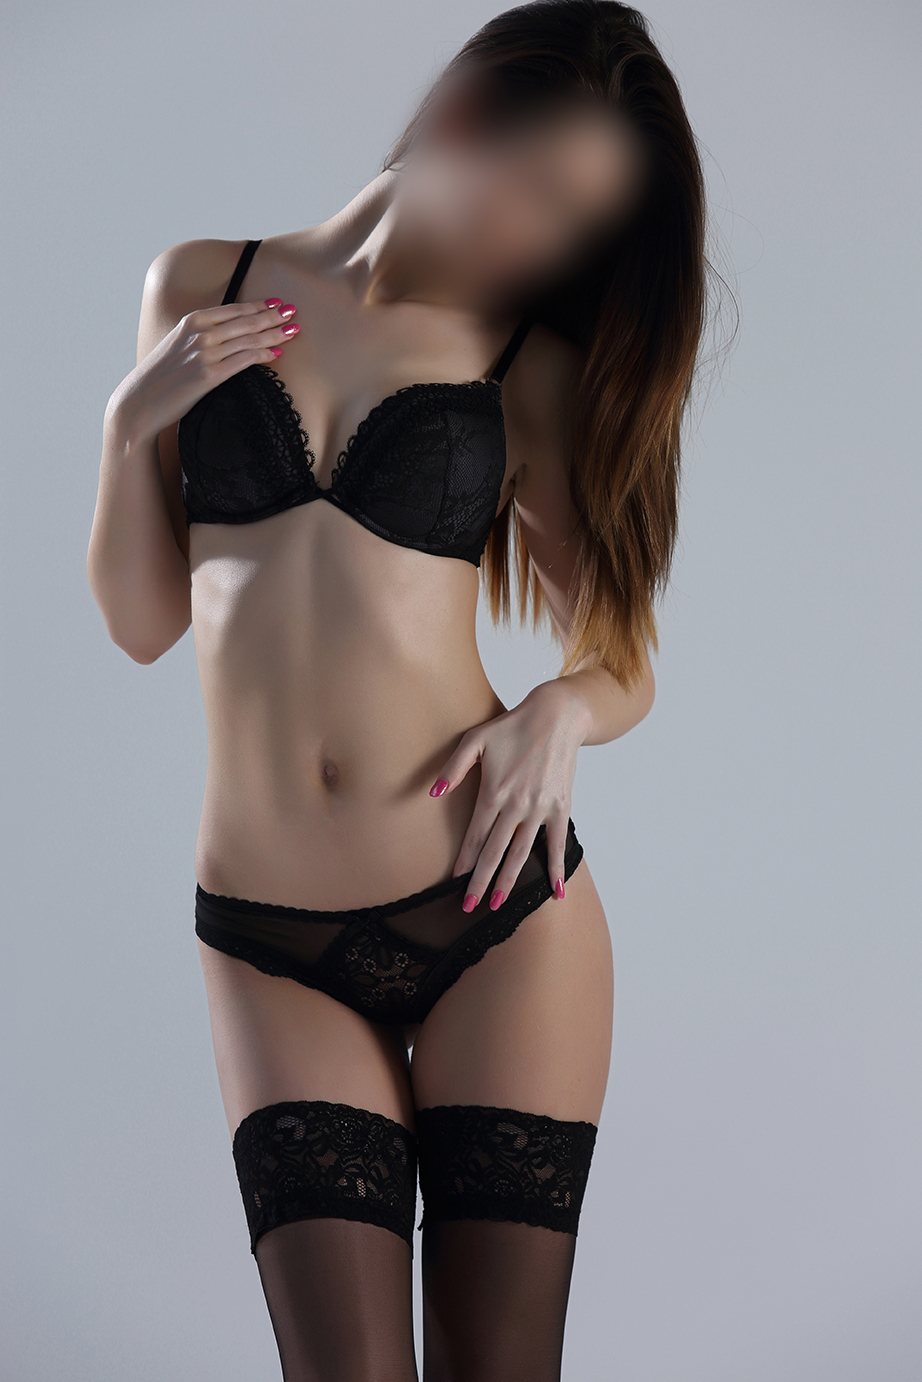 Robyn - Brand New to Escorting - Natural Beauty